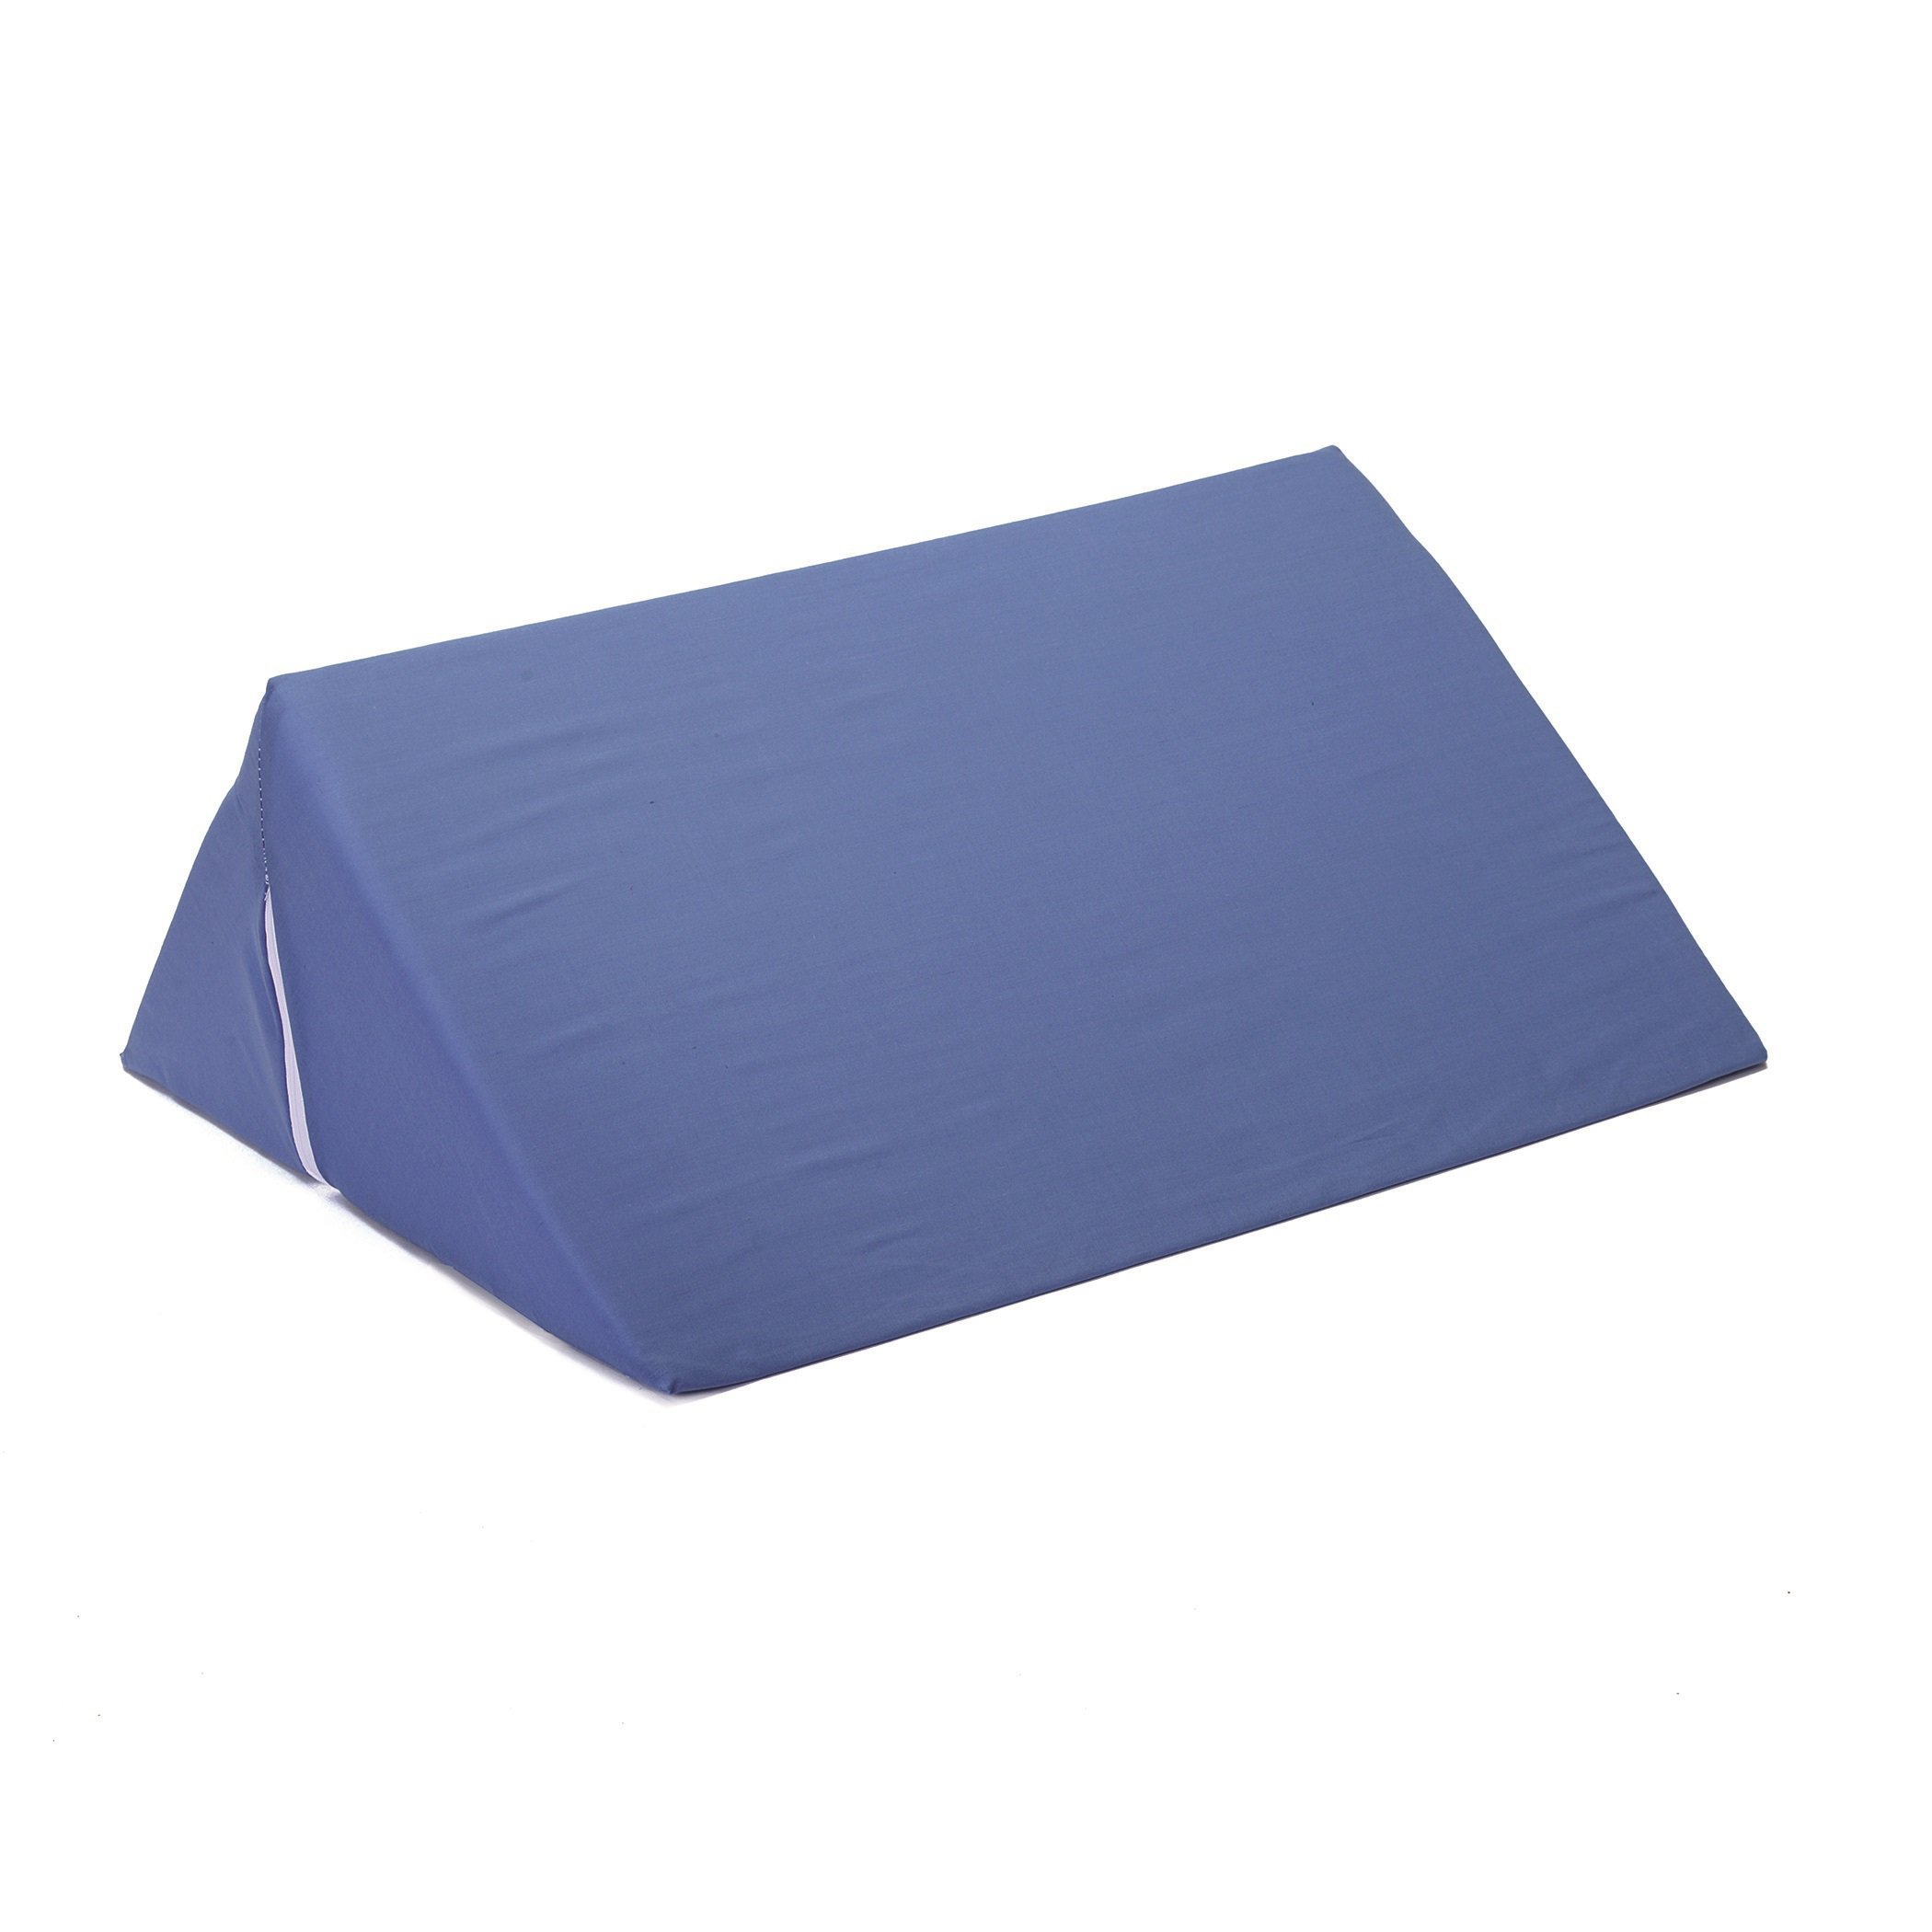 Hermell Products Blue Polycotton Zippered Cover for Model FW4010BL